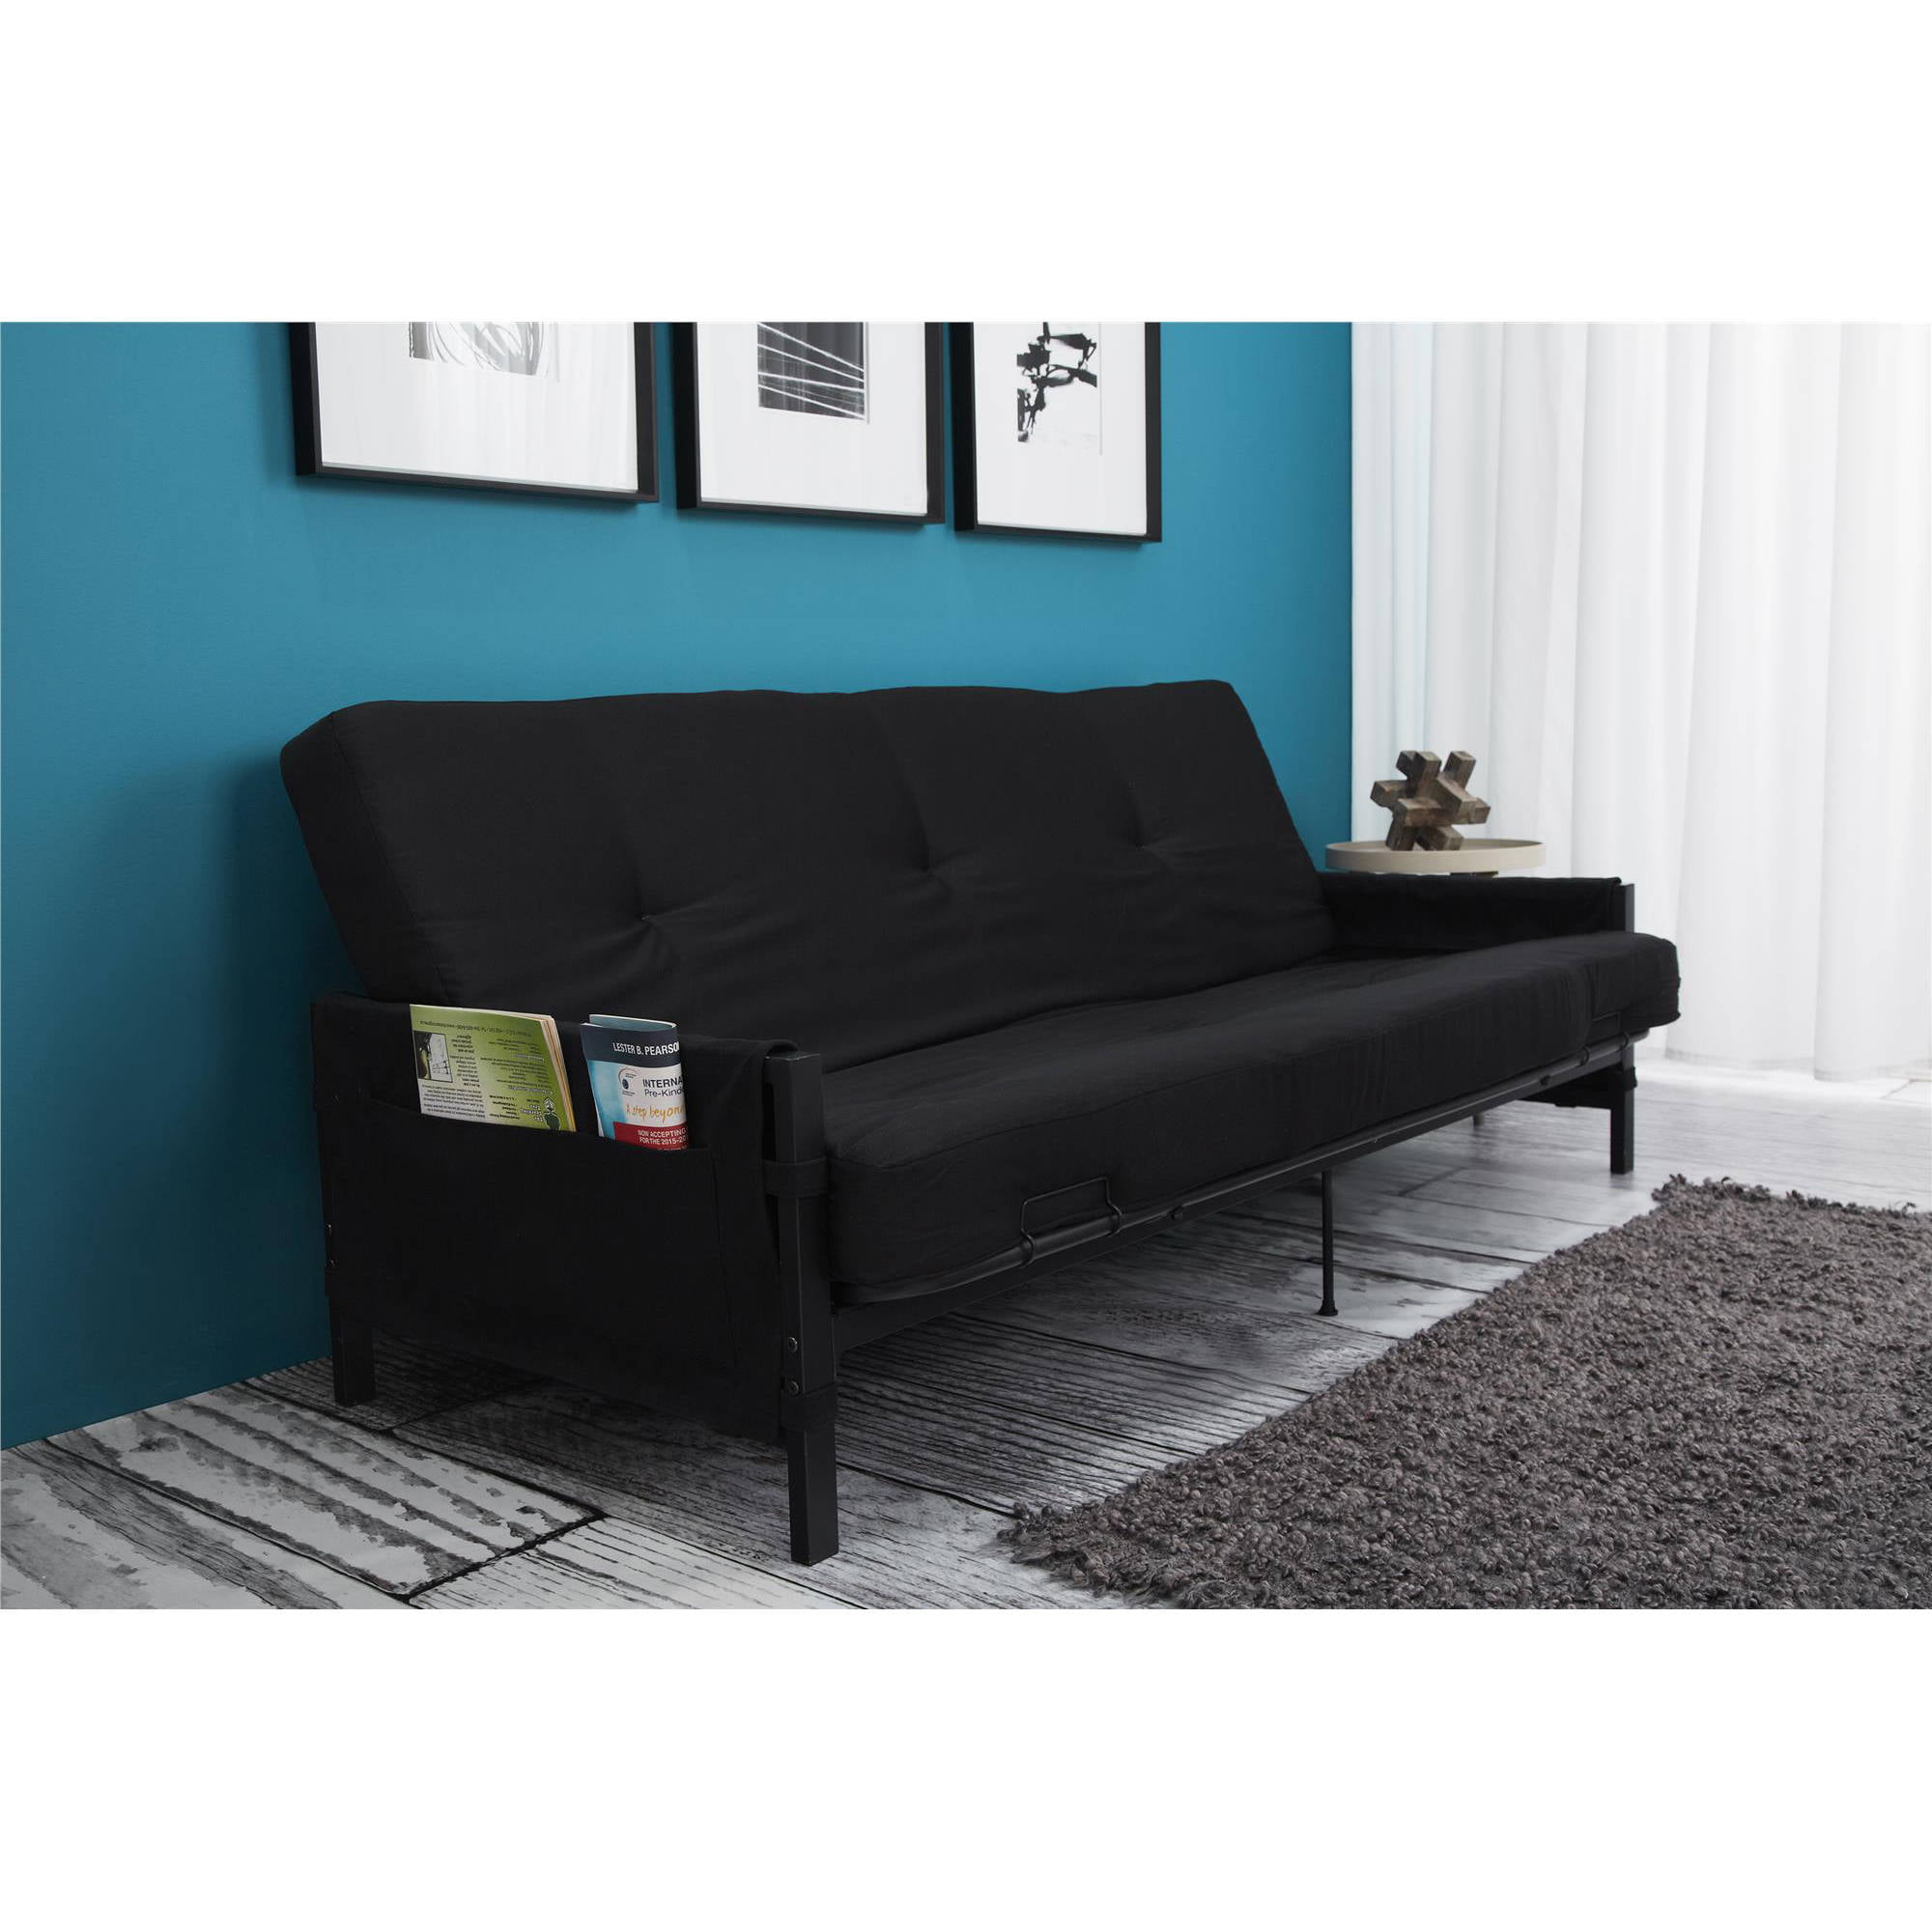 "Mainstays Fairview Storage Arm Futon with 6"" Mattress Black"